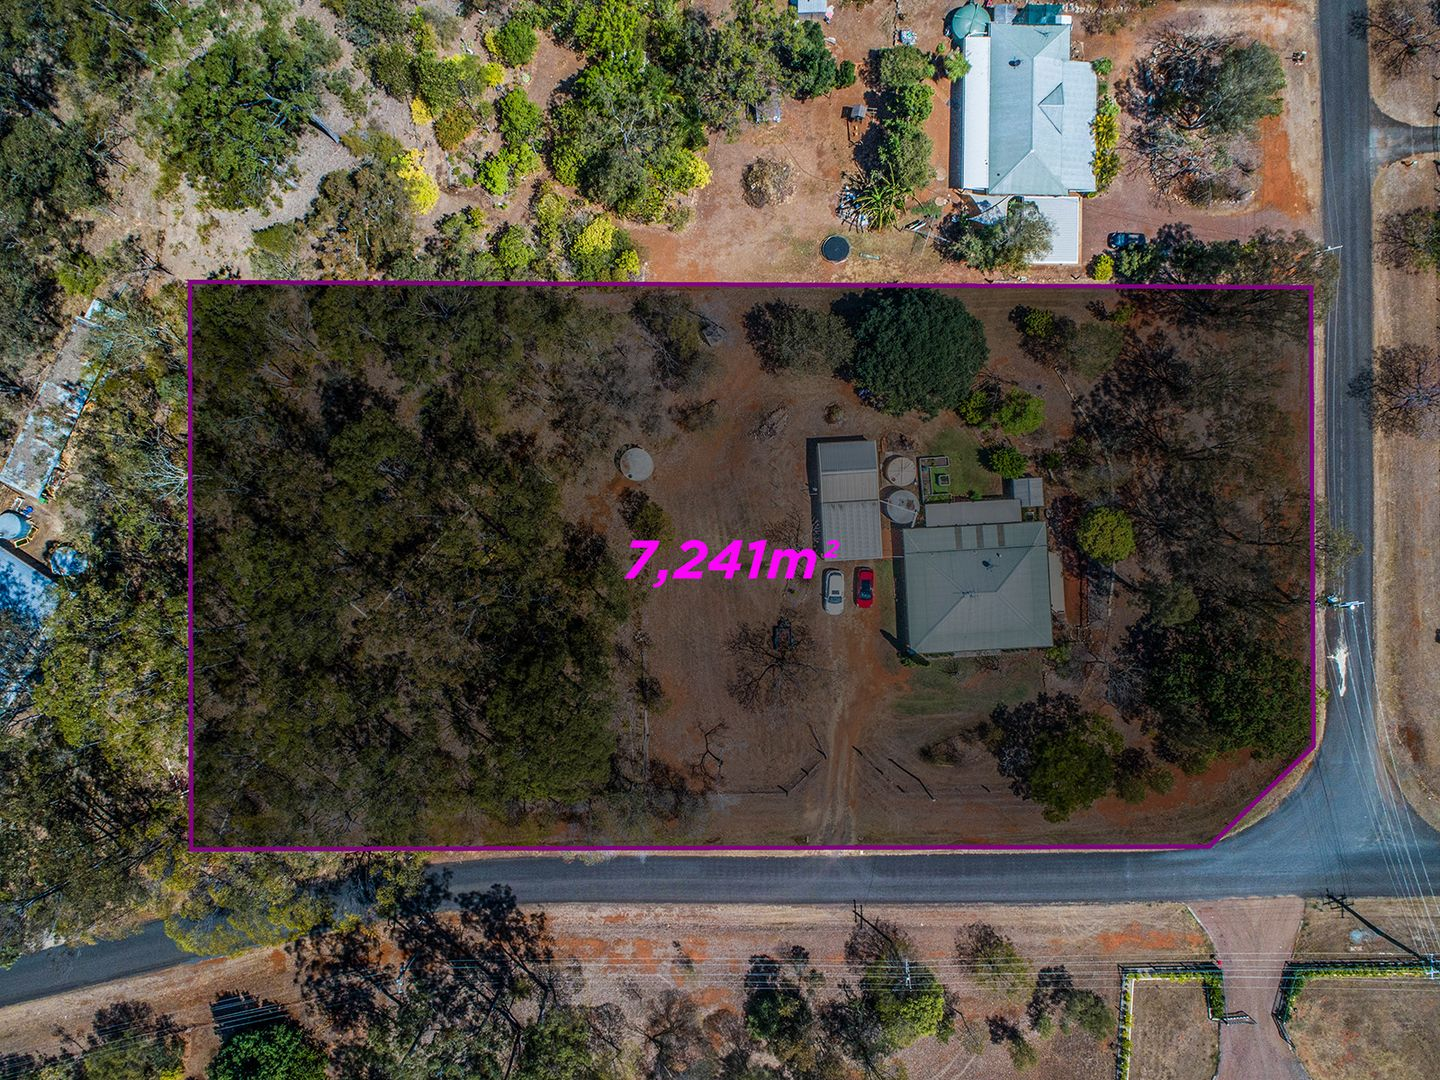 61 Lockyer View Rd, Wivenhoe Pocket QLD 4306, Image 1